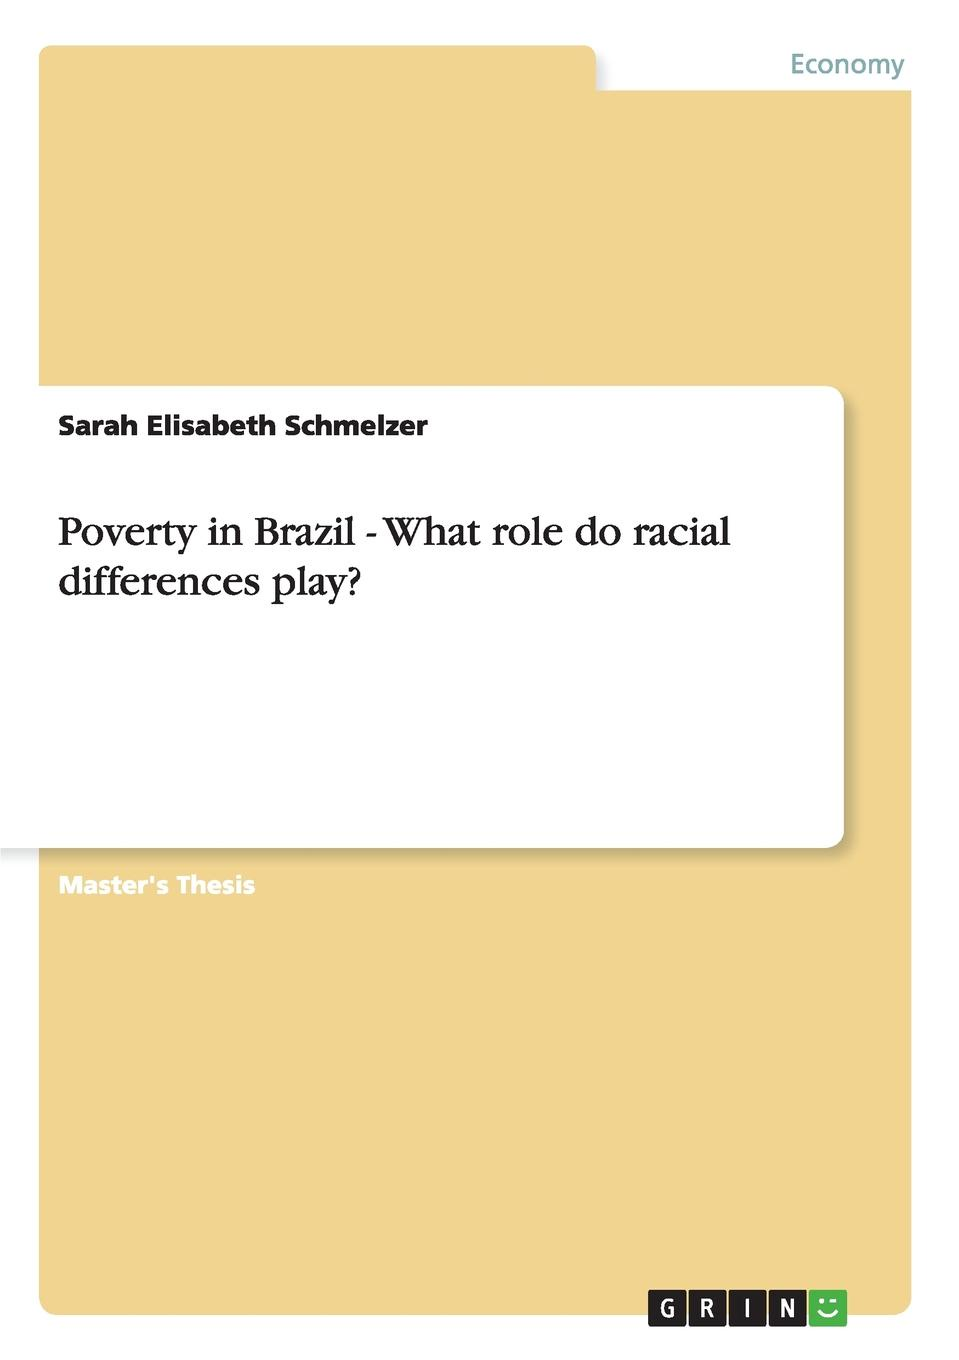 Sarah Elisabeth Schmelzer Poverty in Brazil - What role do racial differences play. micro perspectives on poverty alleviation in kenya